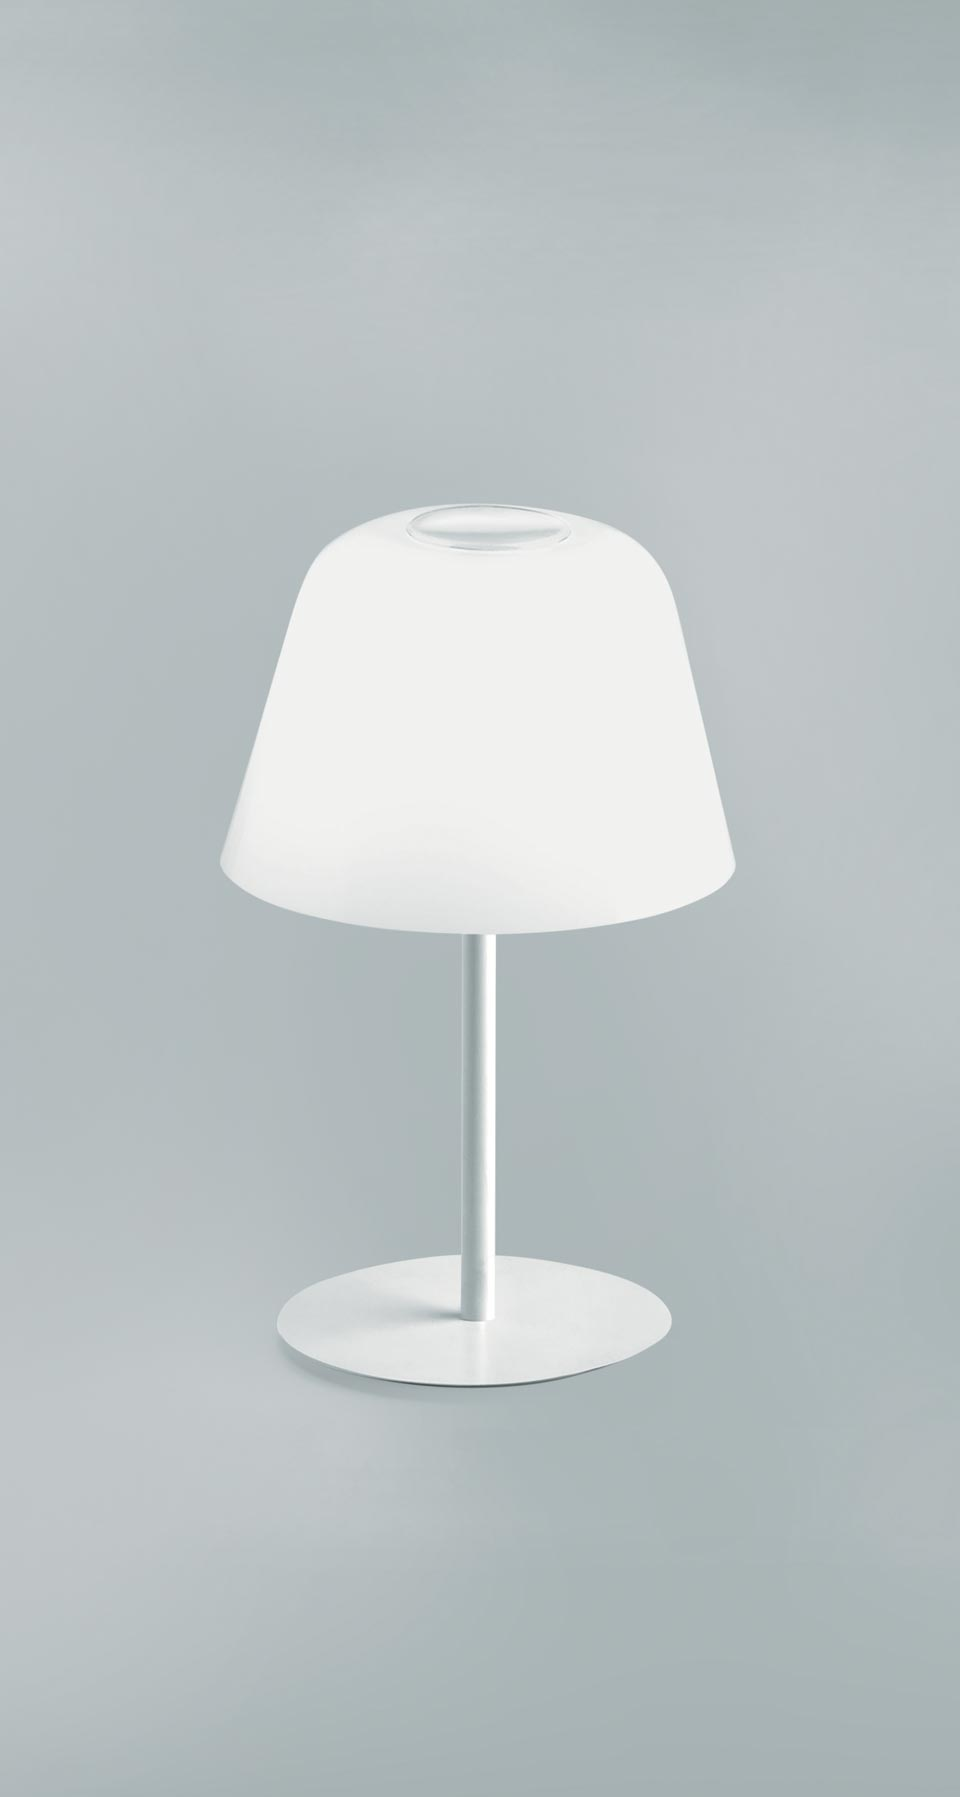 lampe ayers blanche petit mod le en verre souffl r f 16100127. Black Bedroom Furniture Sets. Home Design Ideas